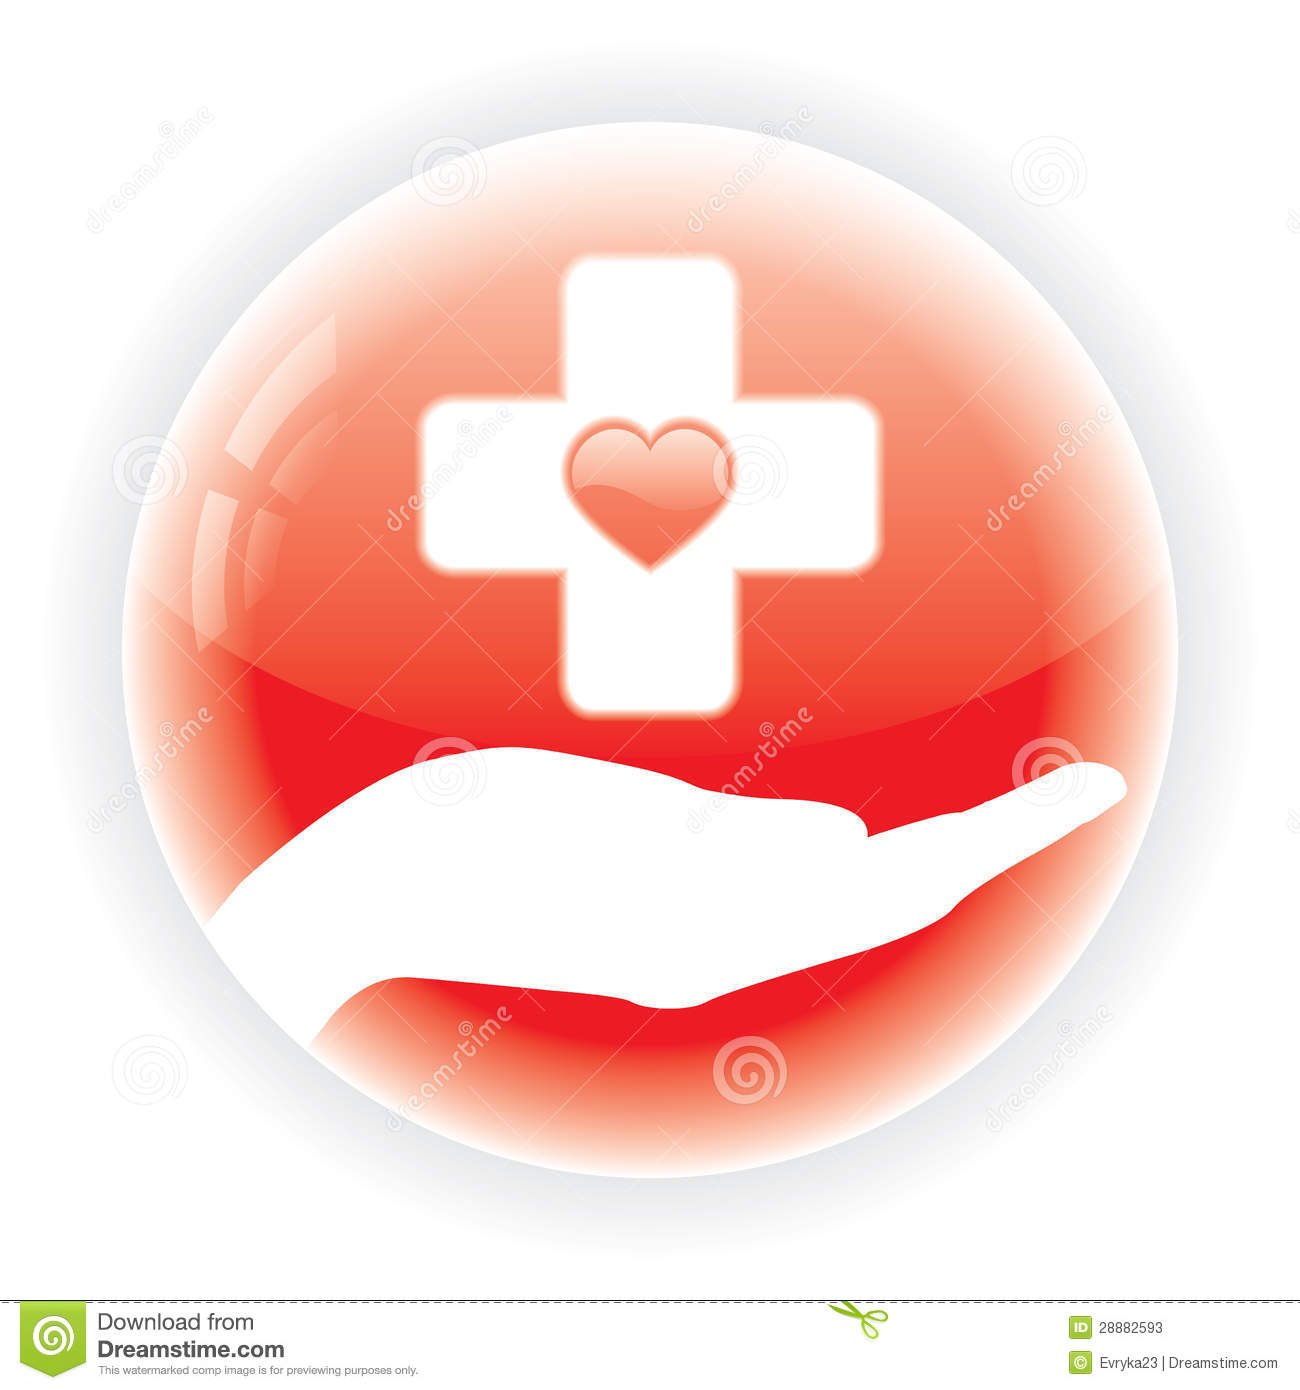 Red Medical Symbol Stock Vector Illustration Of Hospital 28882593